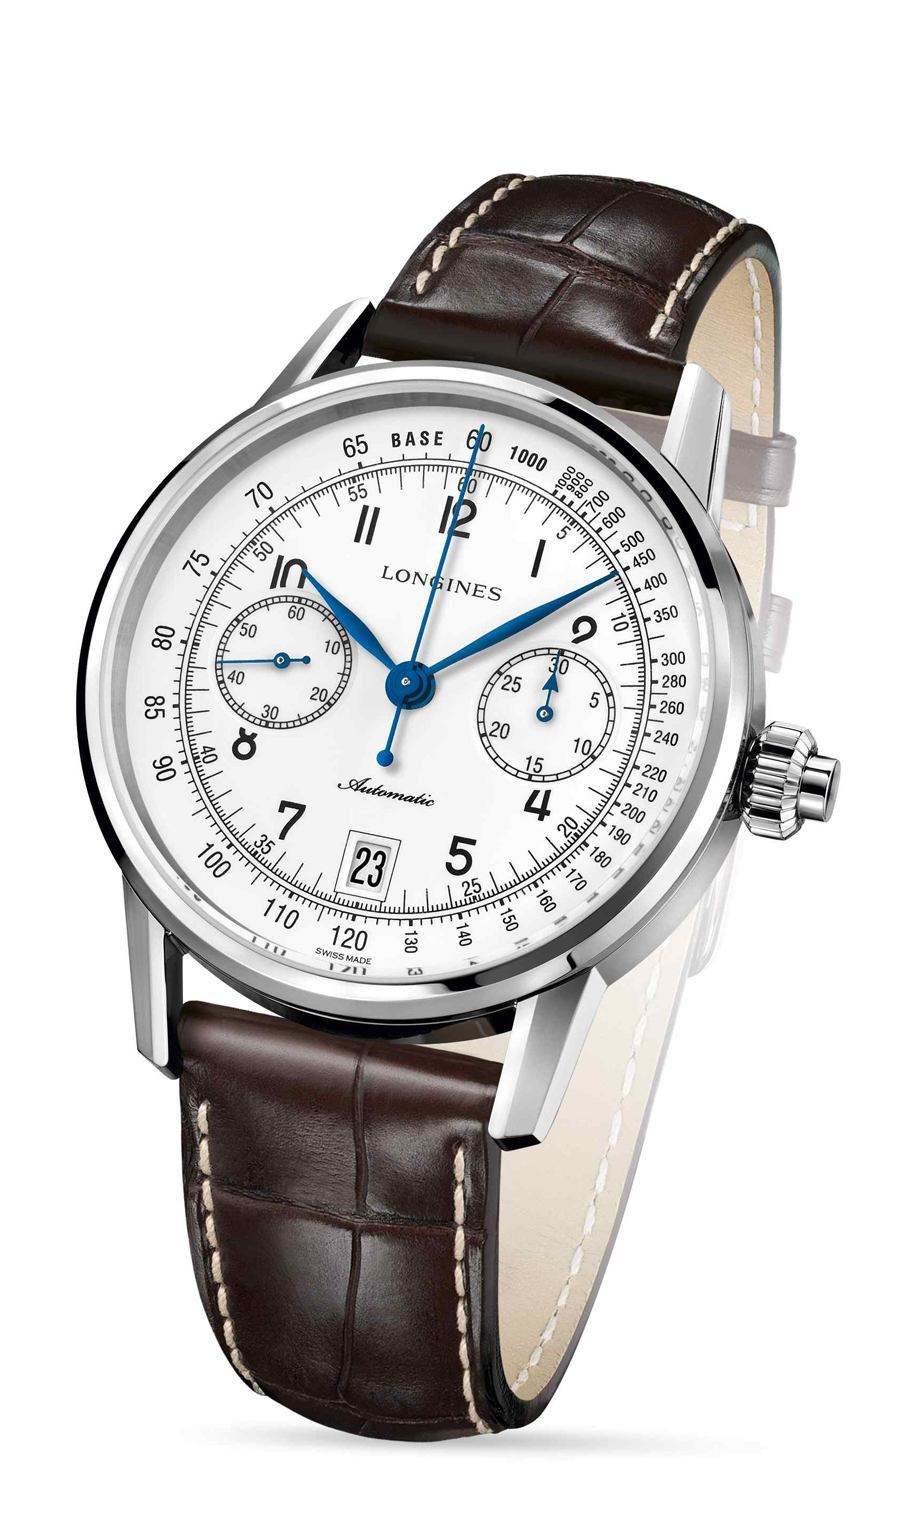 Longines: The Longines Column-Wheel Single Push-Piece Chronograph in Weiß